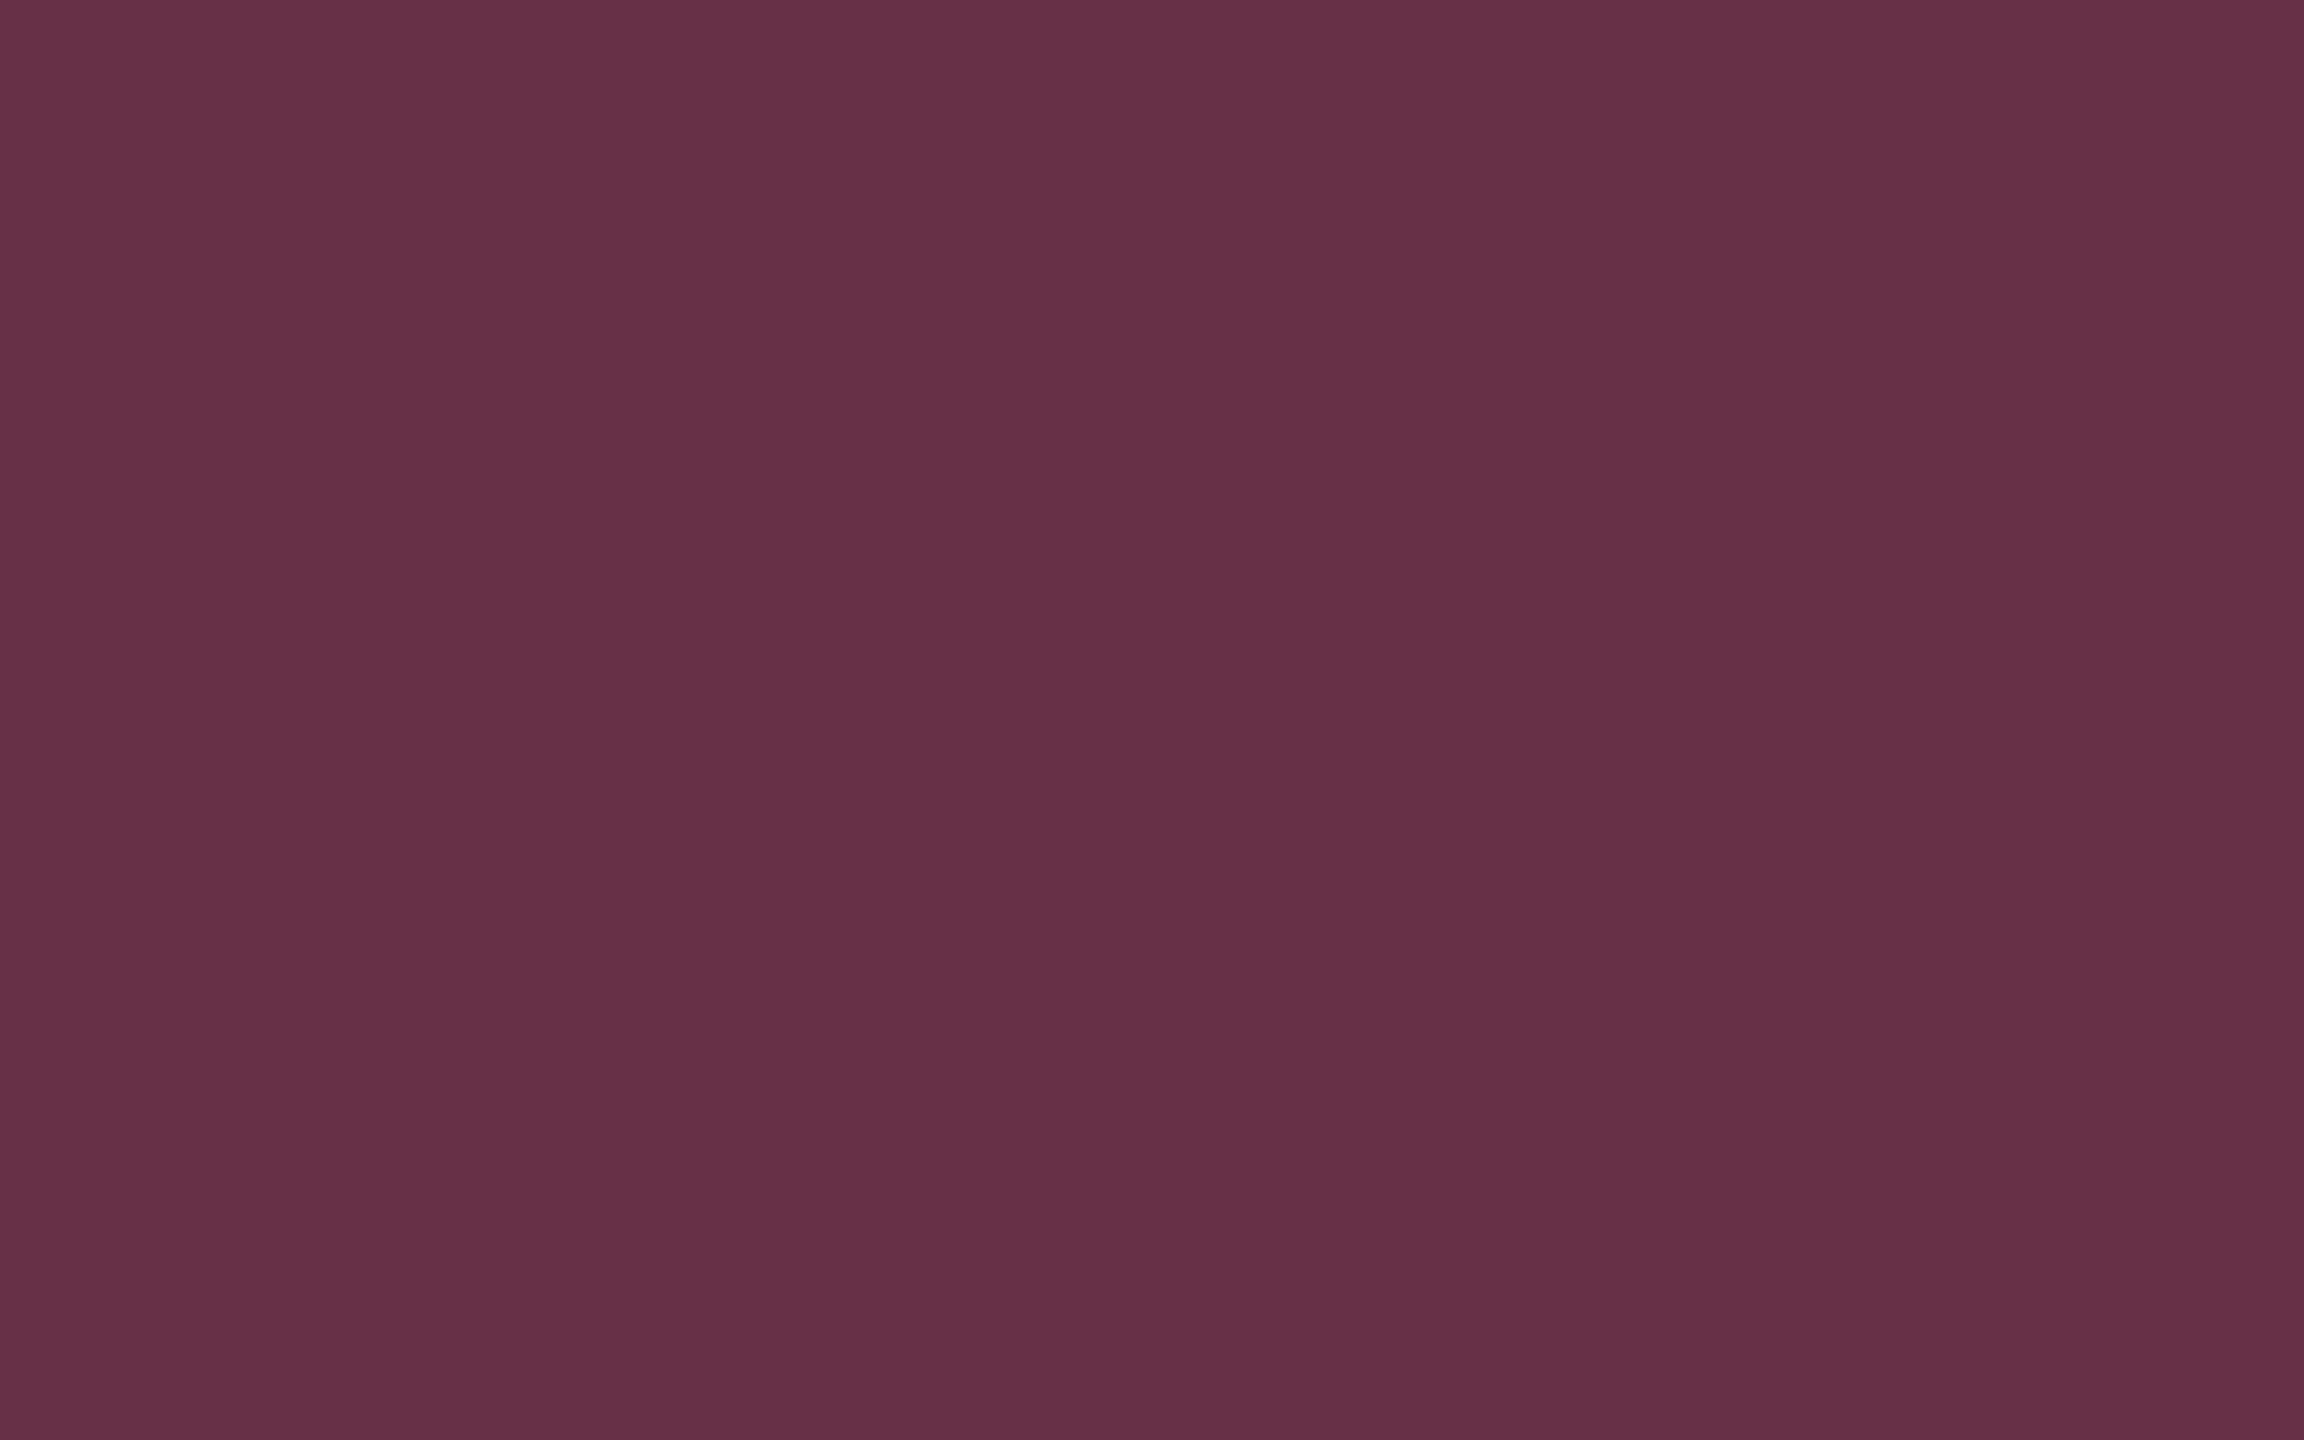 2304x1440 Old Mauve Solid Color Background